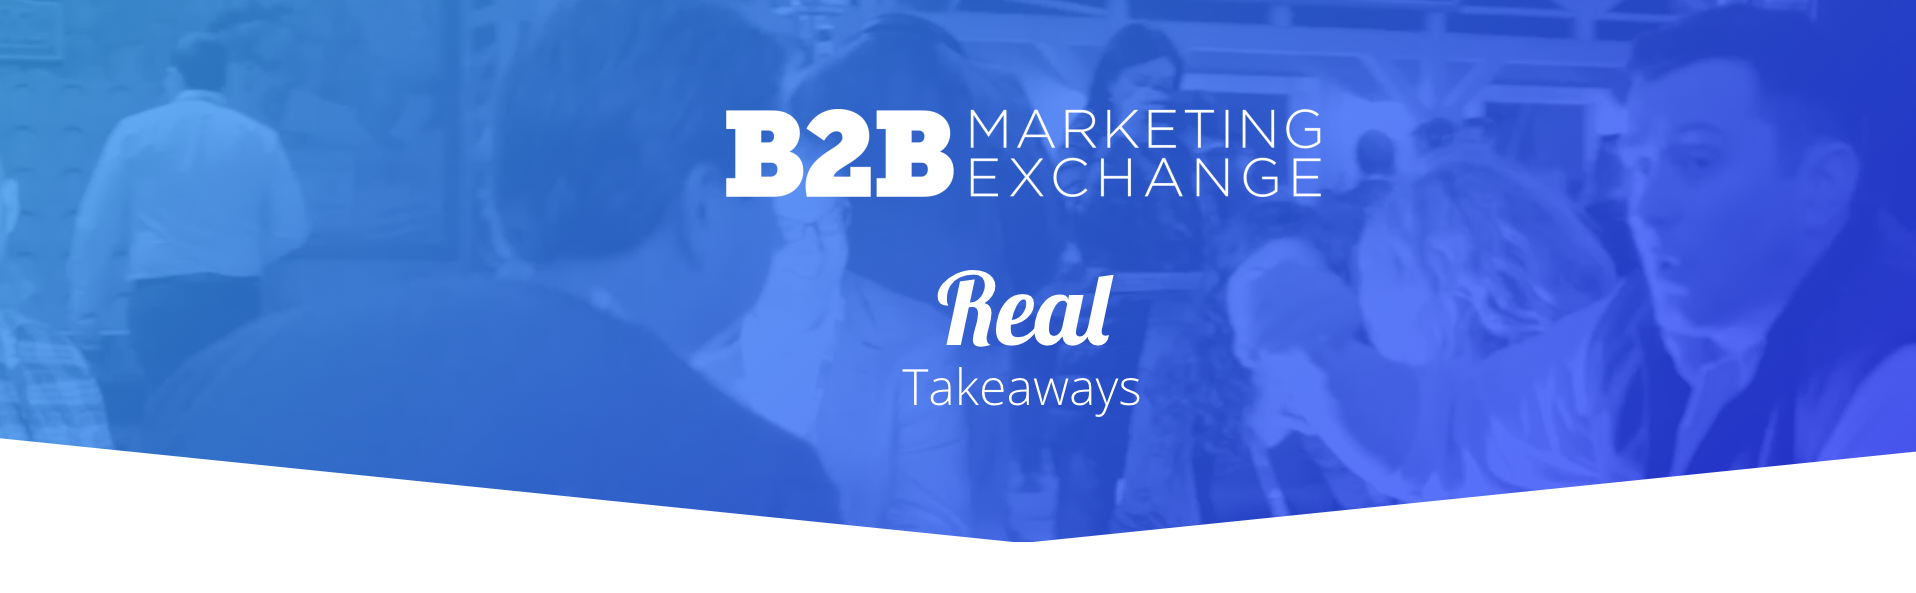 B2B Marketing Exchange 2018 Marketing Conference